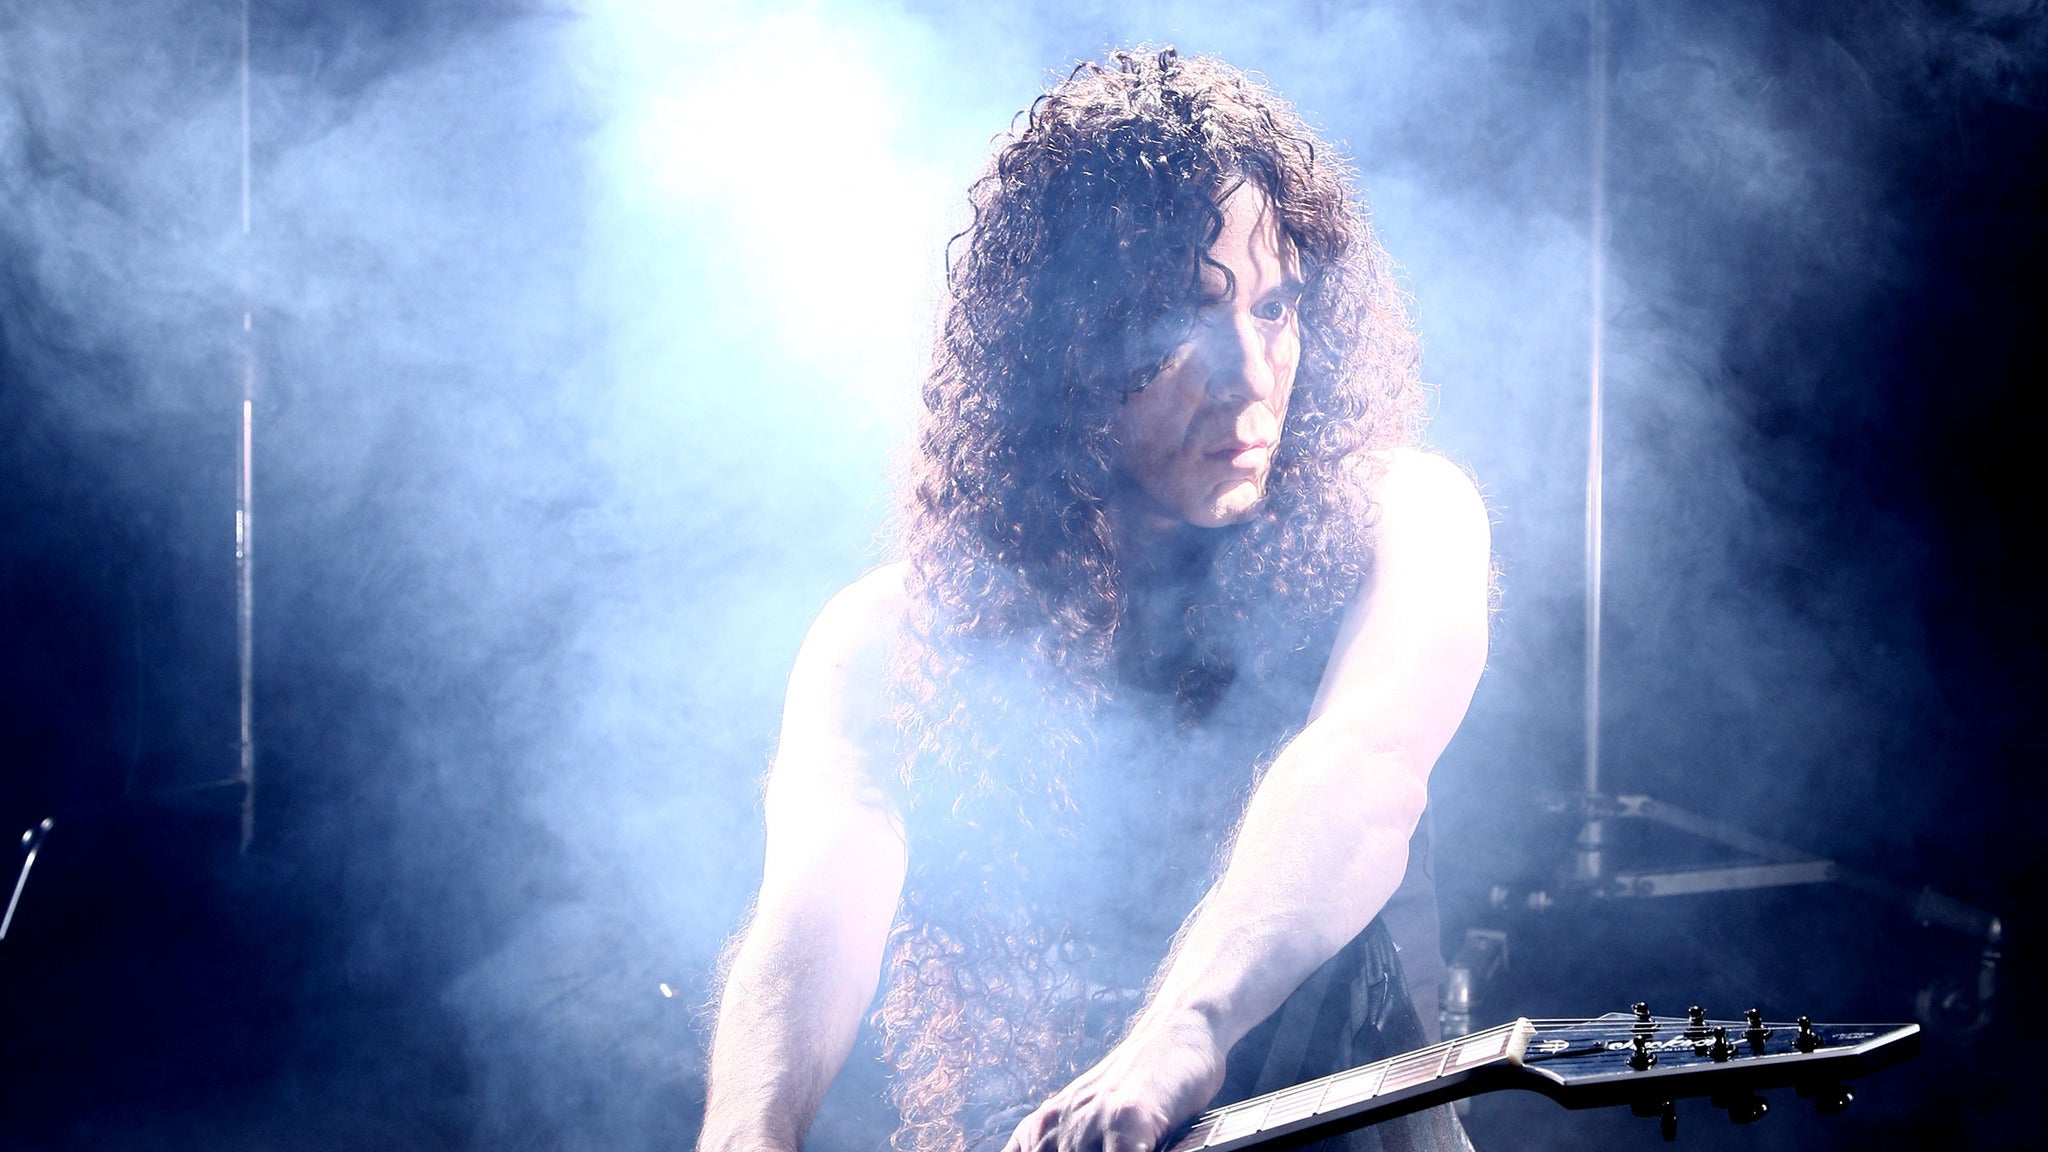 Marty Friedman, Scale the Summit, the Fine Constant